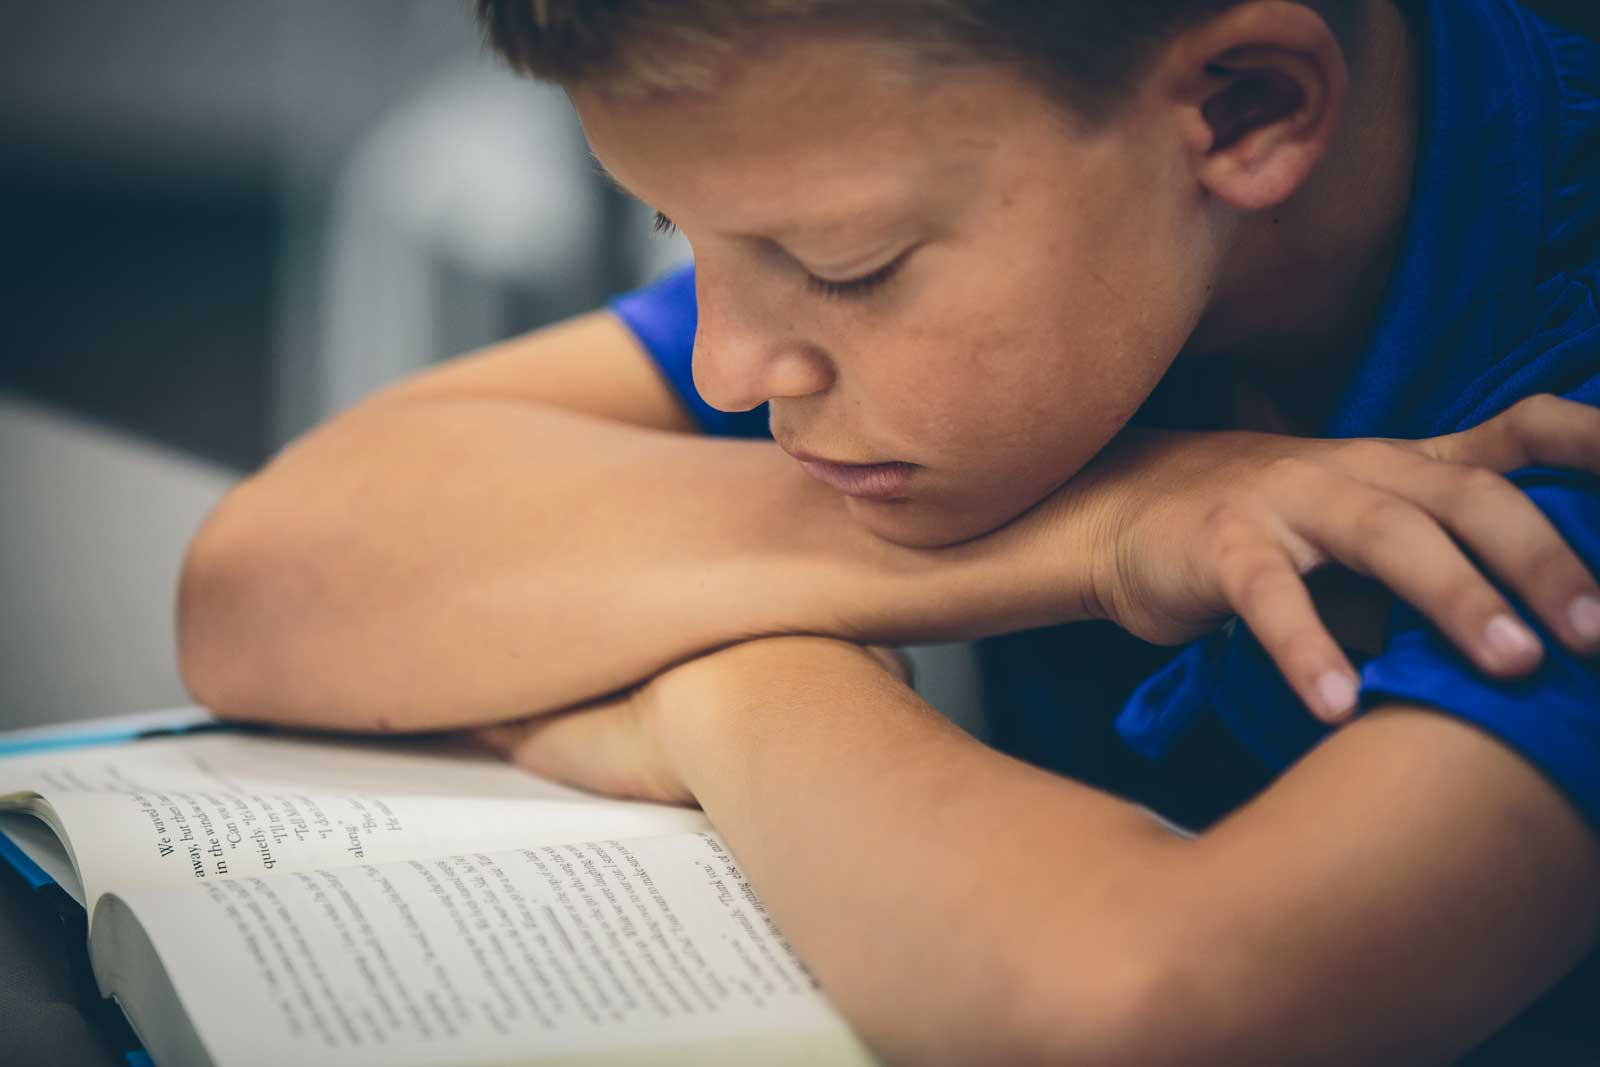 Kid with arms crossed reading a book